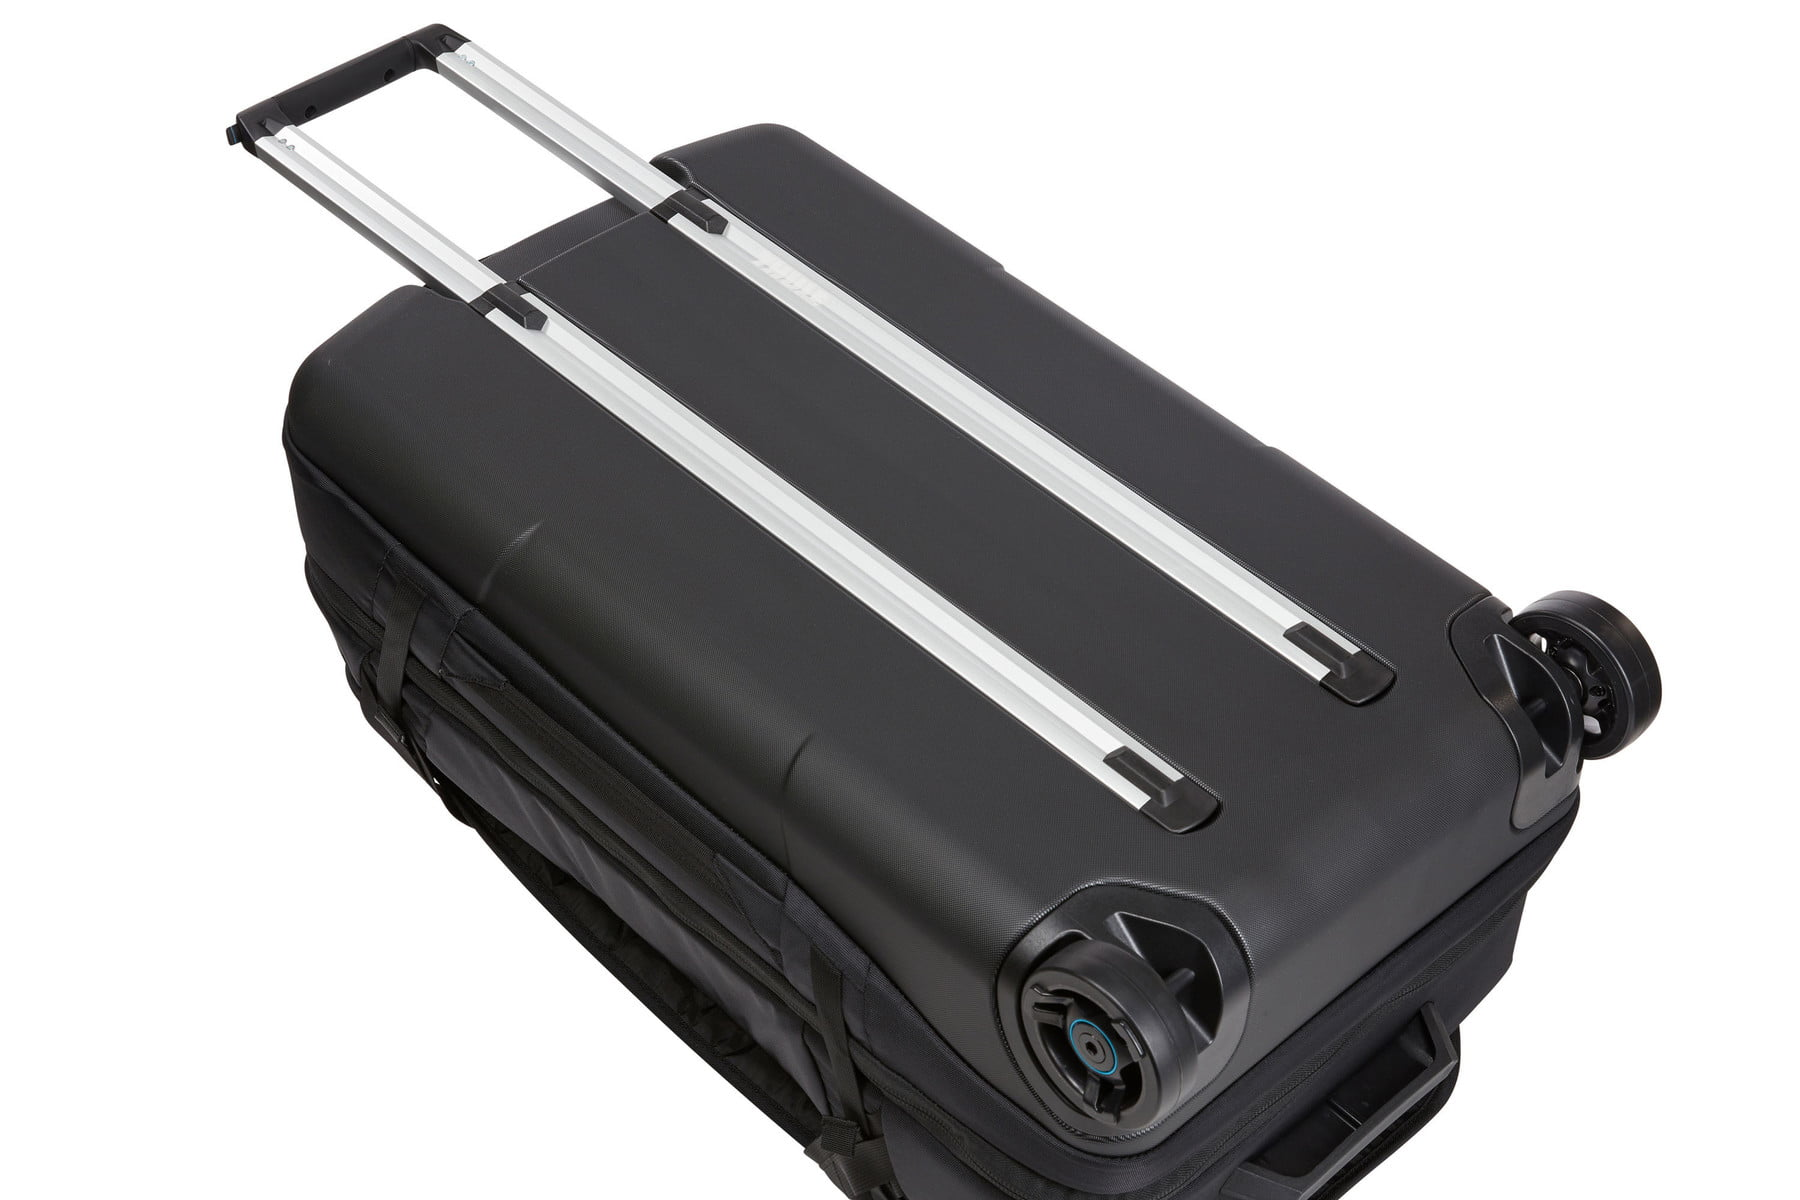 Geanta voiaj Thule Subterra Luggage 70cm Dark Shadow 4